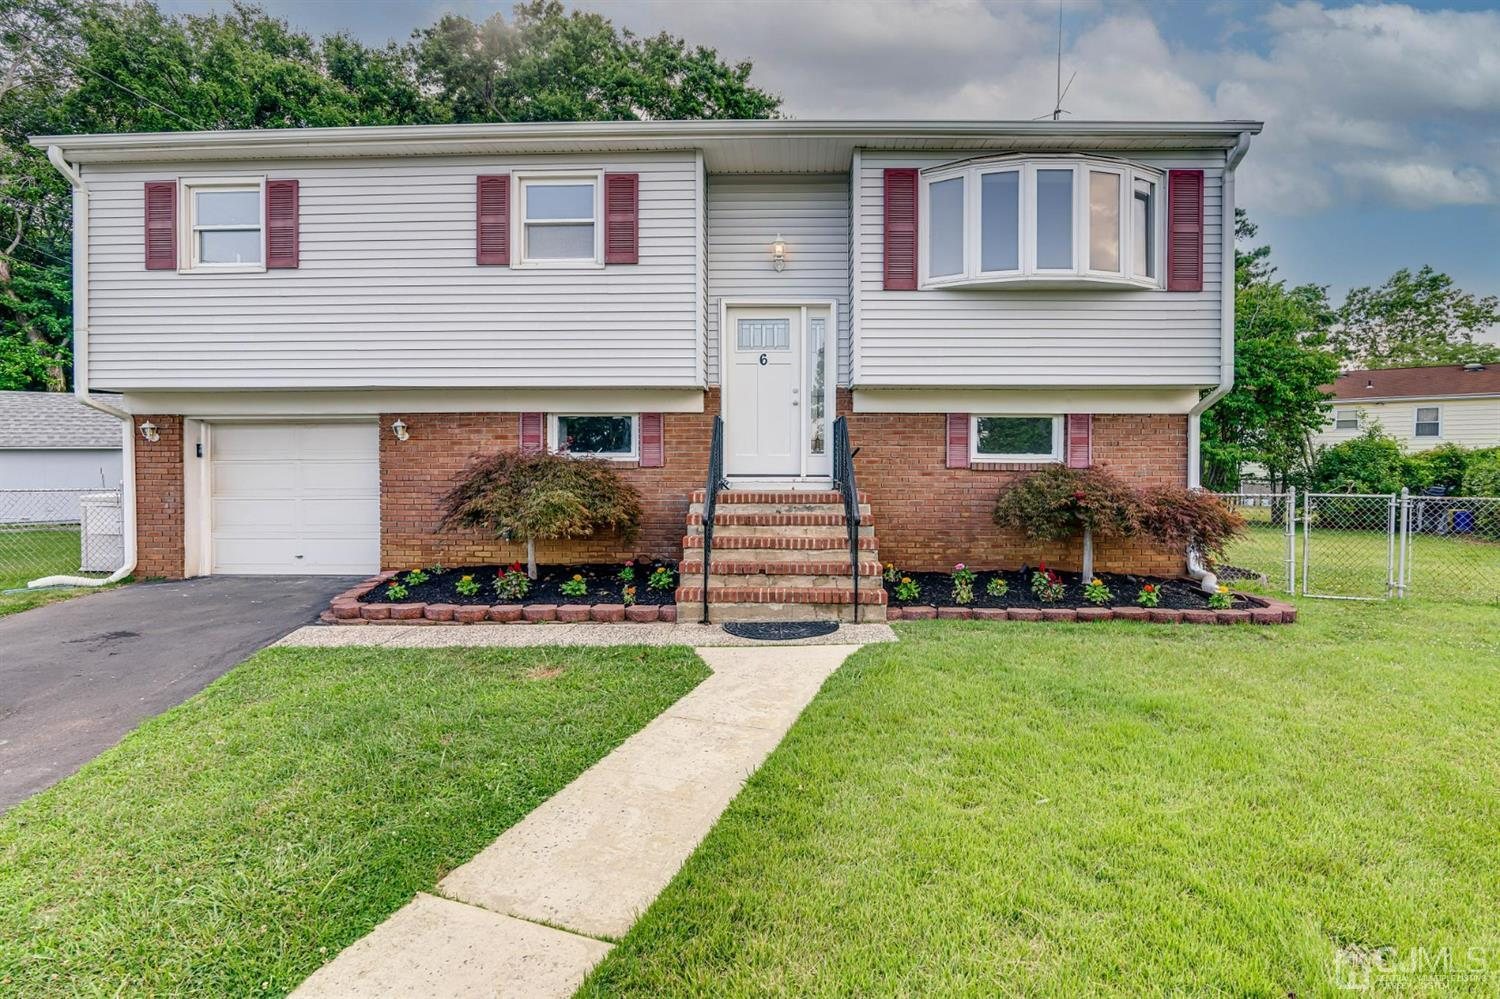 Property for sale at 6 Kim Court, Old Bridge,  New Jersey 08857